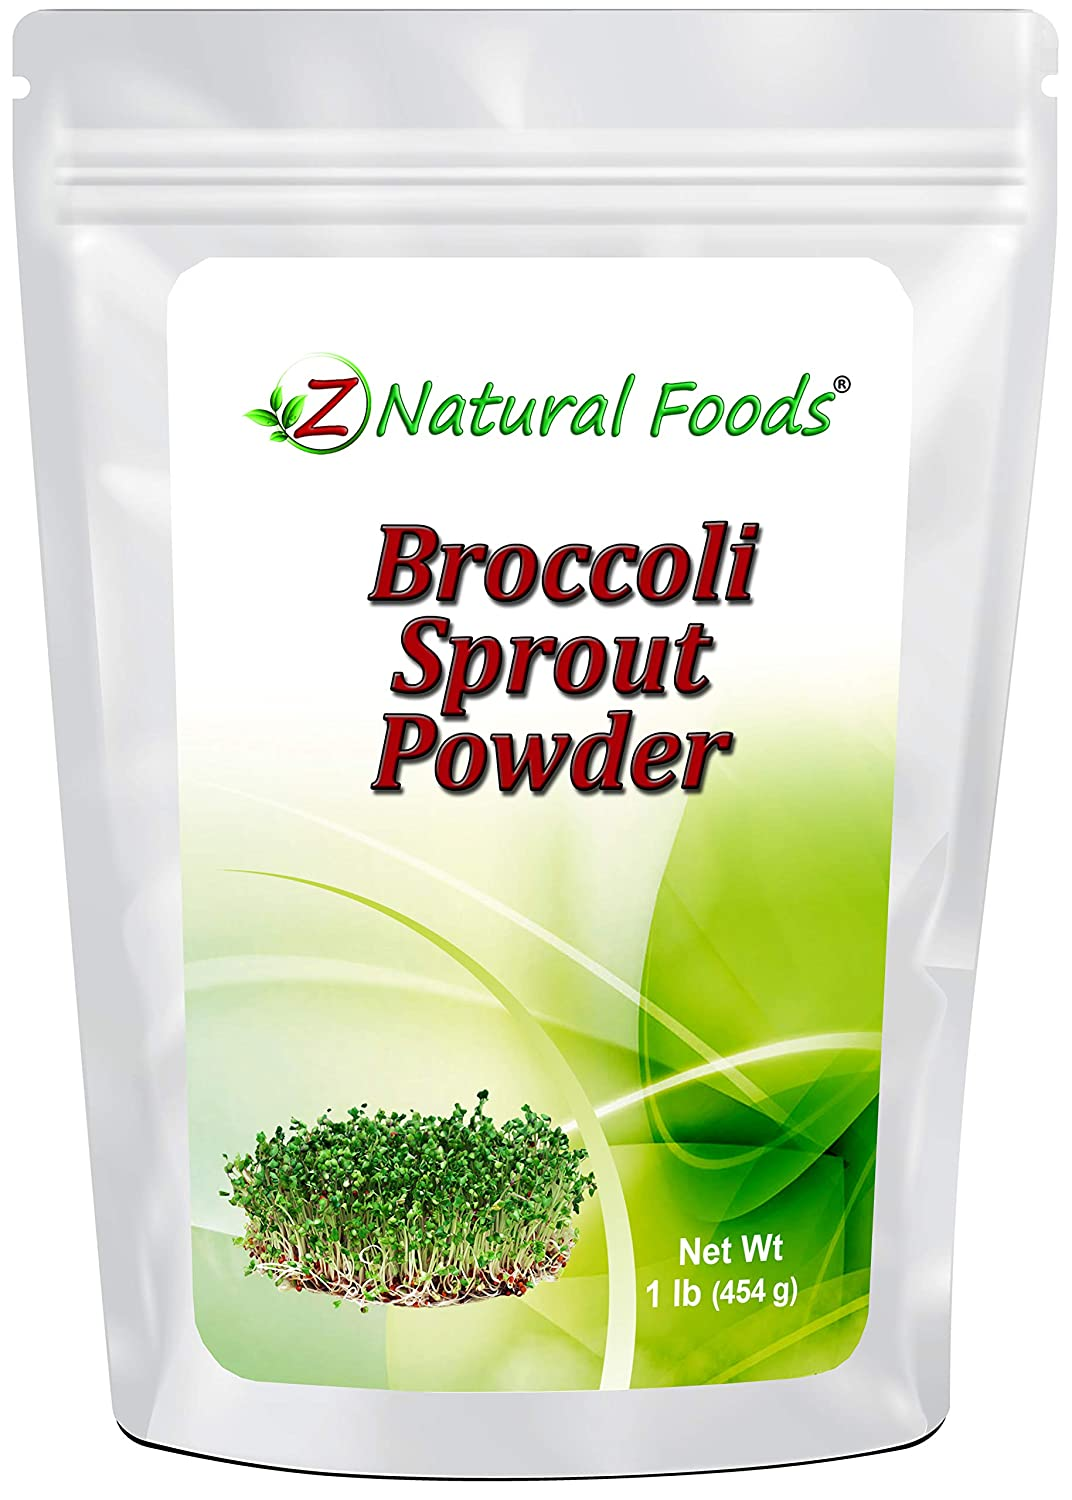 Broccoli Sprout Powder - All Natural Antioxidant, Vitamin & Mineral Superfood Supplement - Mix In Smoothies, Shakes, & Recipes - Raw, Vegan, Gluten Free, Non GMO - Bulk 1 lb Size